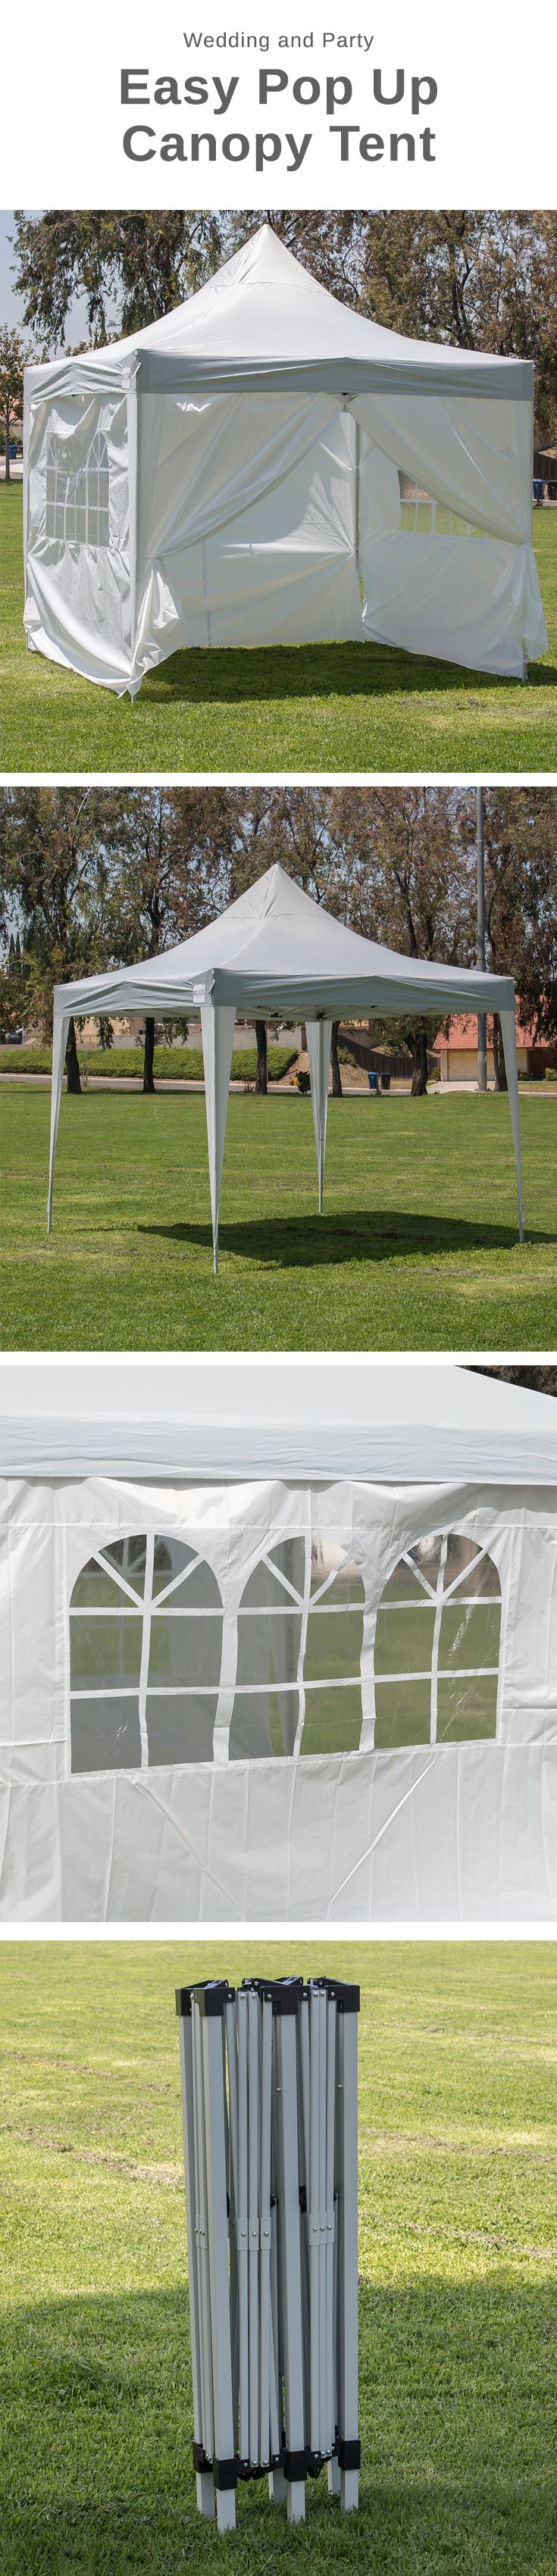 Premium 10x10 Outdoor Wedding Canopy Event Party Tent w/ 4 Walls. Featuring a taller height that allows for more room, cooler temperatures, and easy assembly. Designed to withstand the elements, this Premium Pop Up Canopy tent features simple easy to set